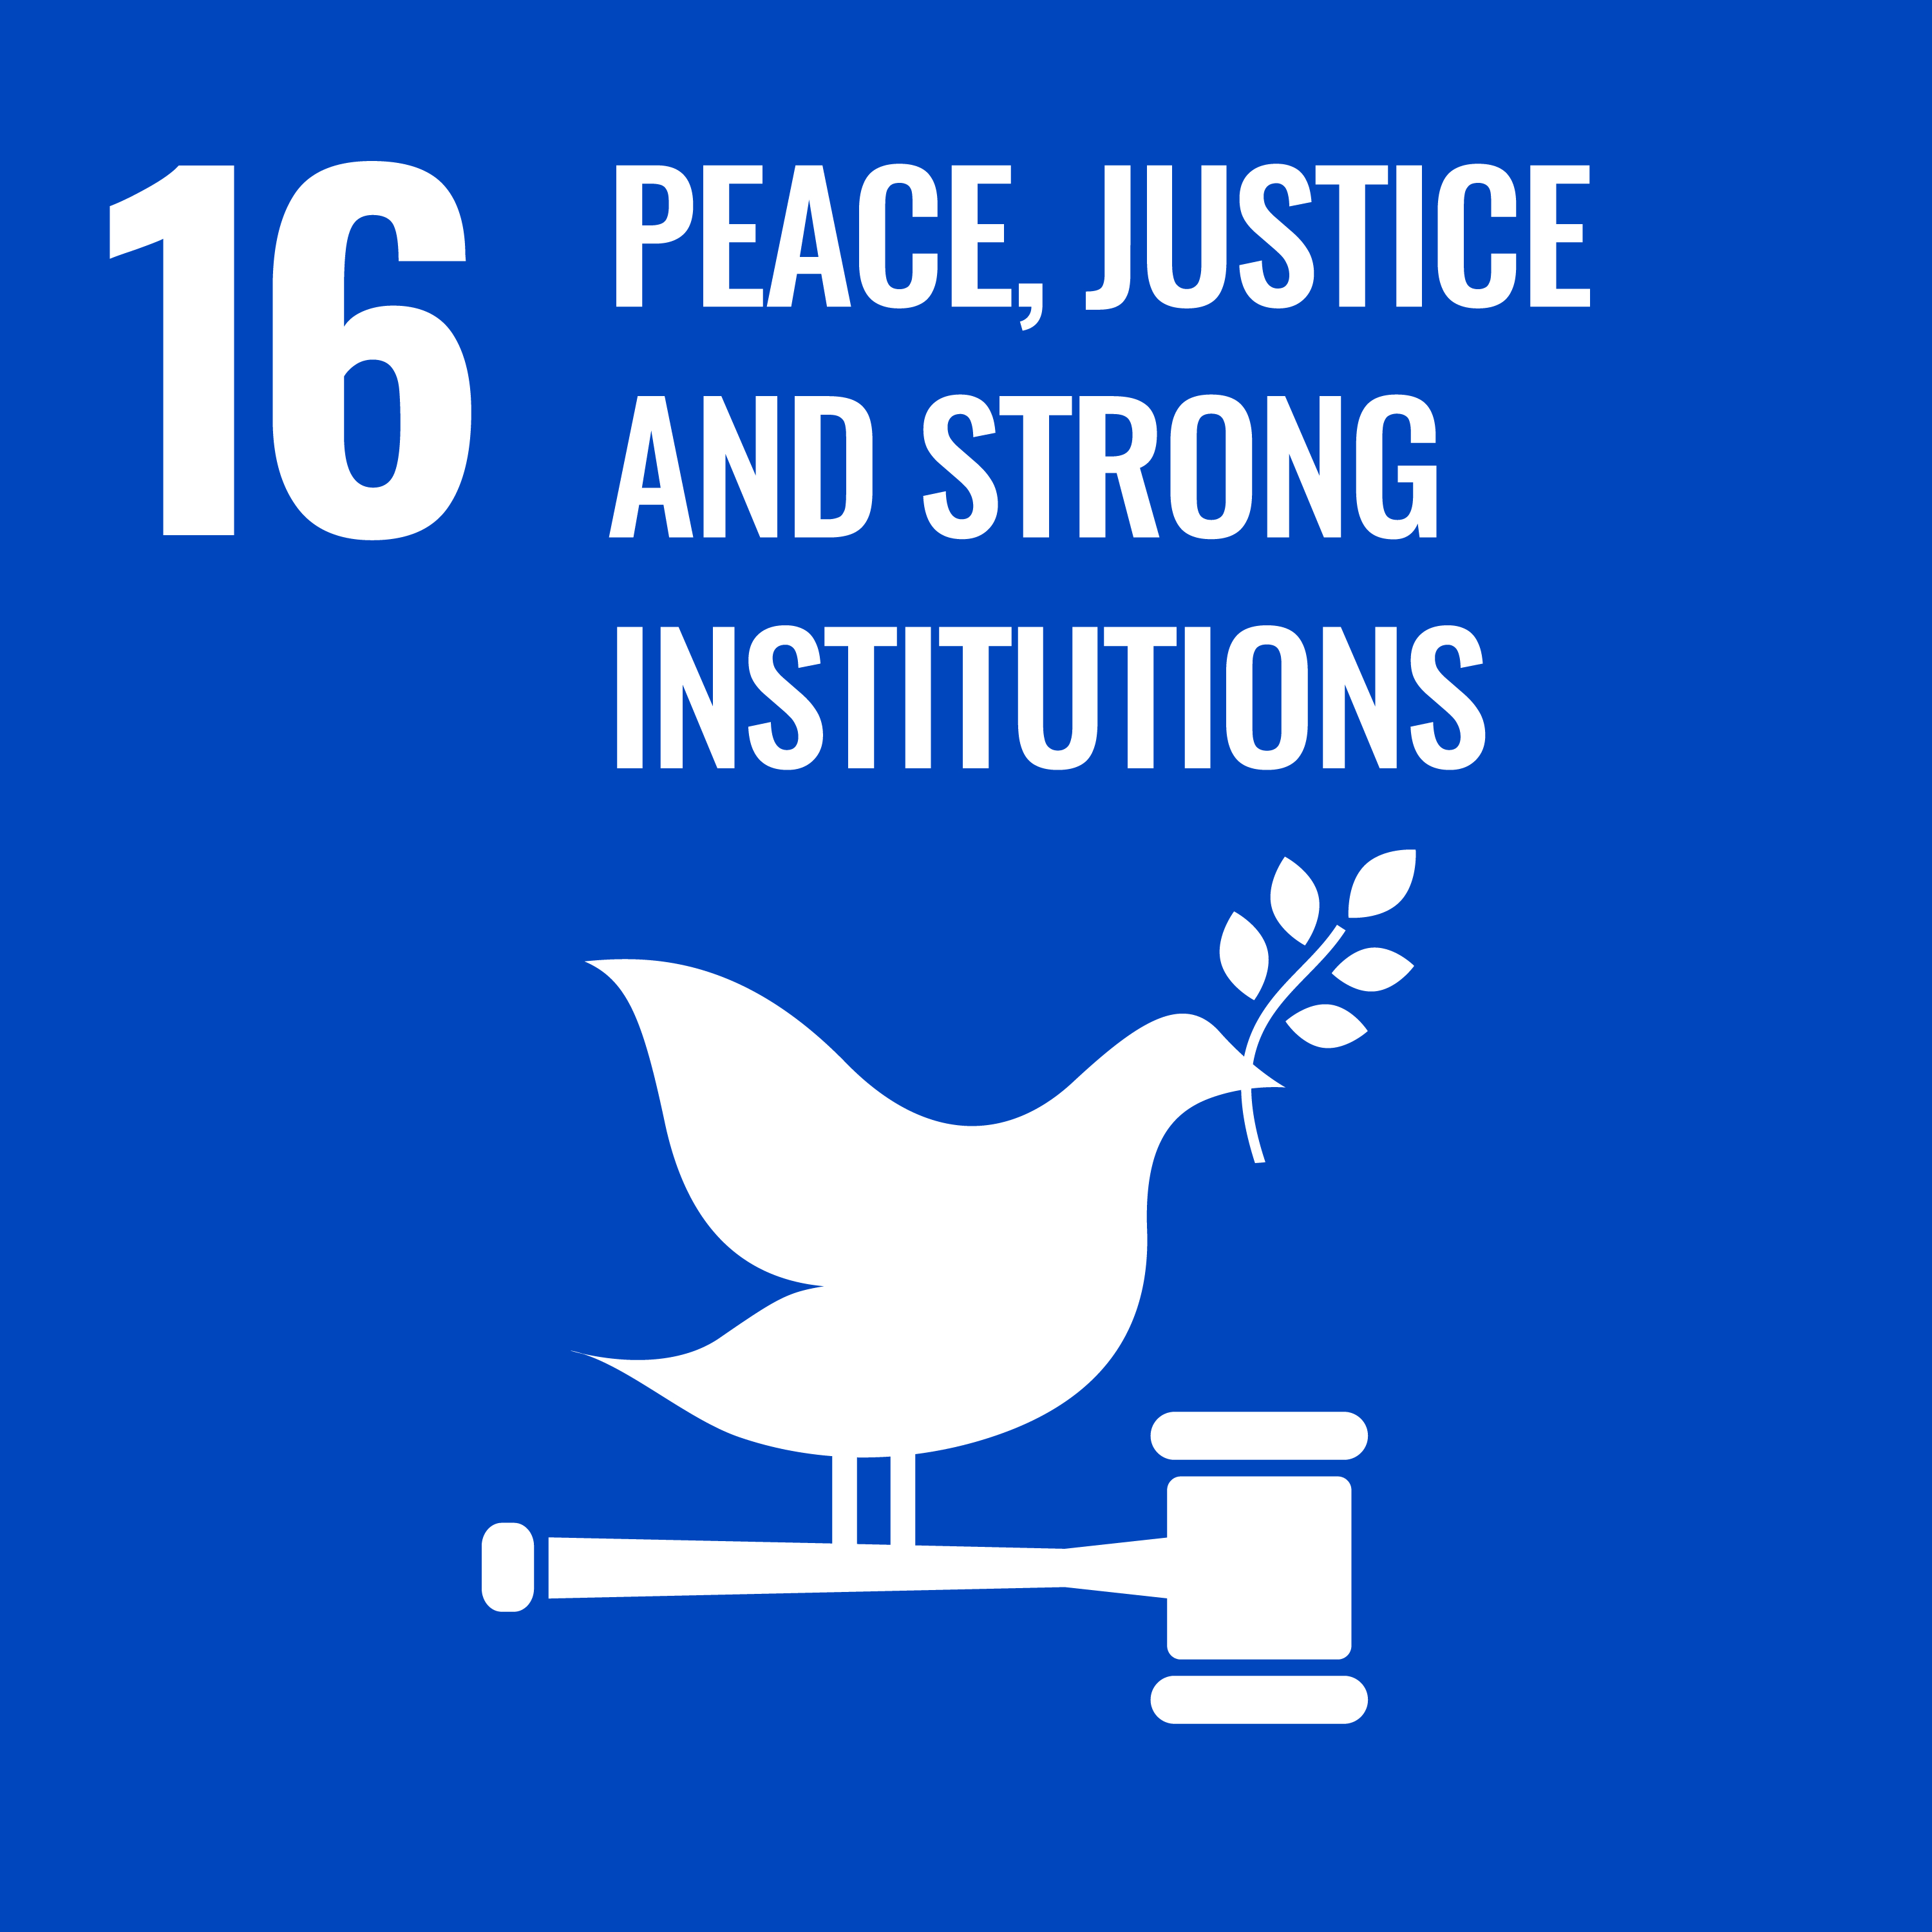 UN Sustainable Development Goals #16